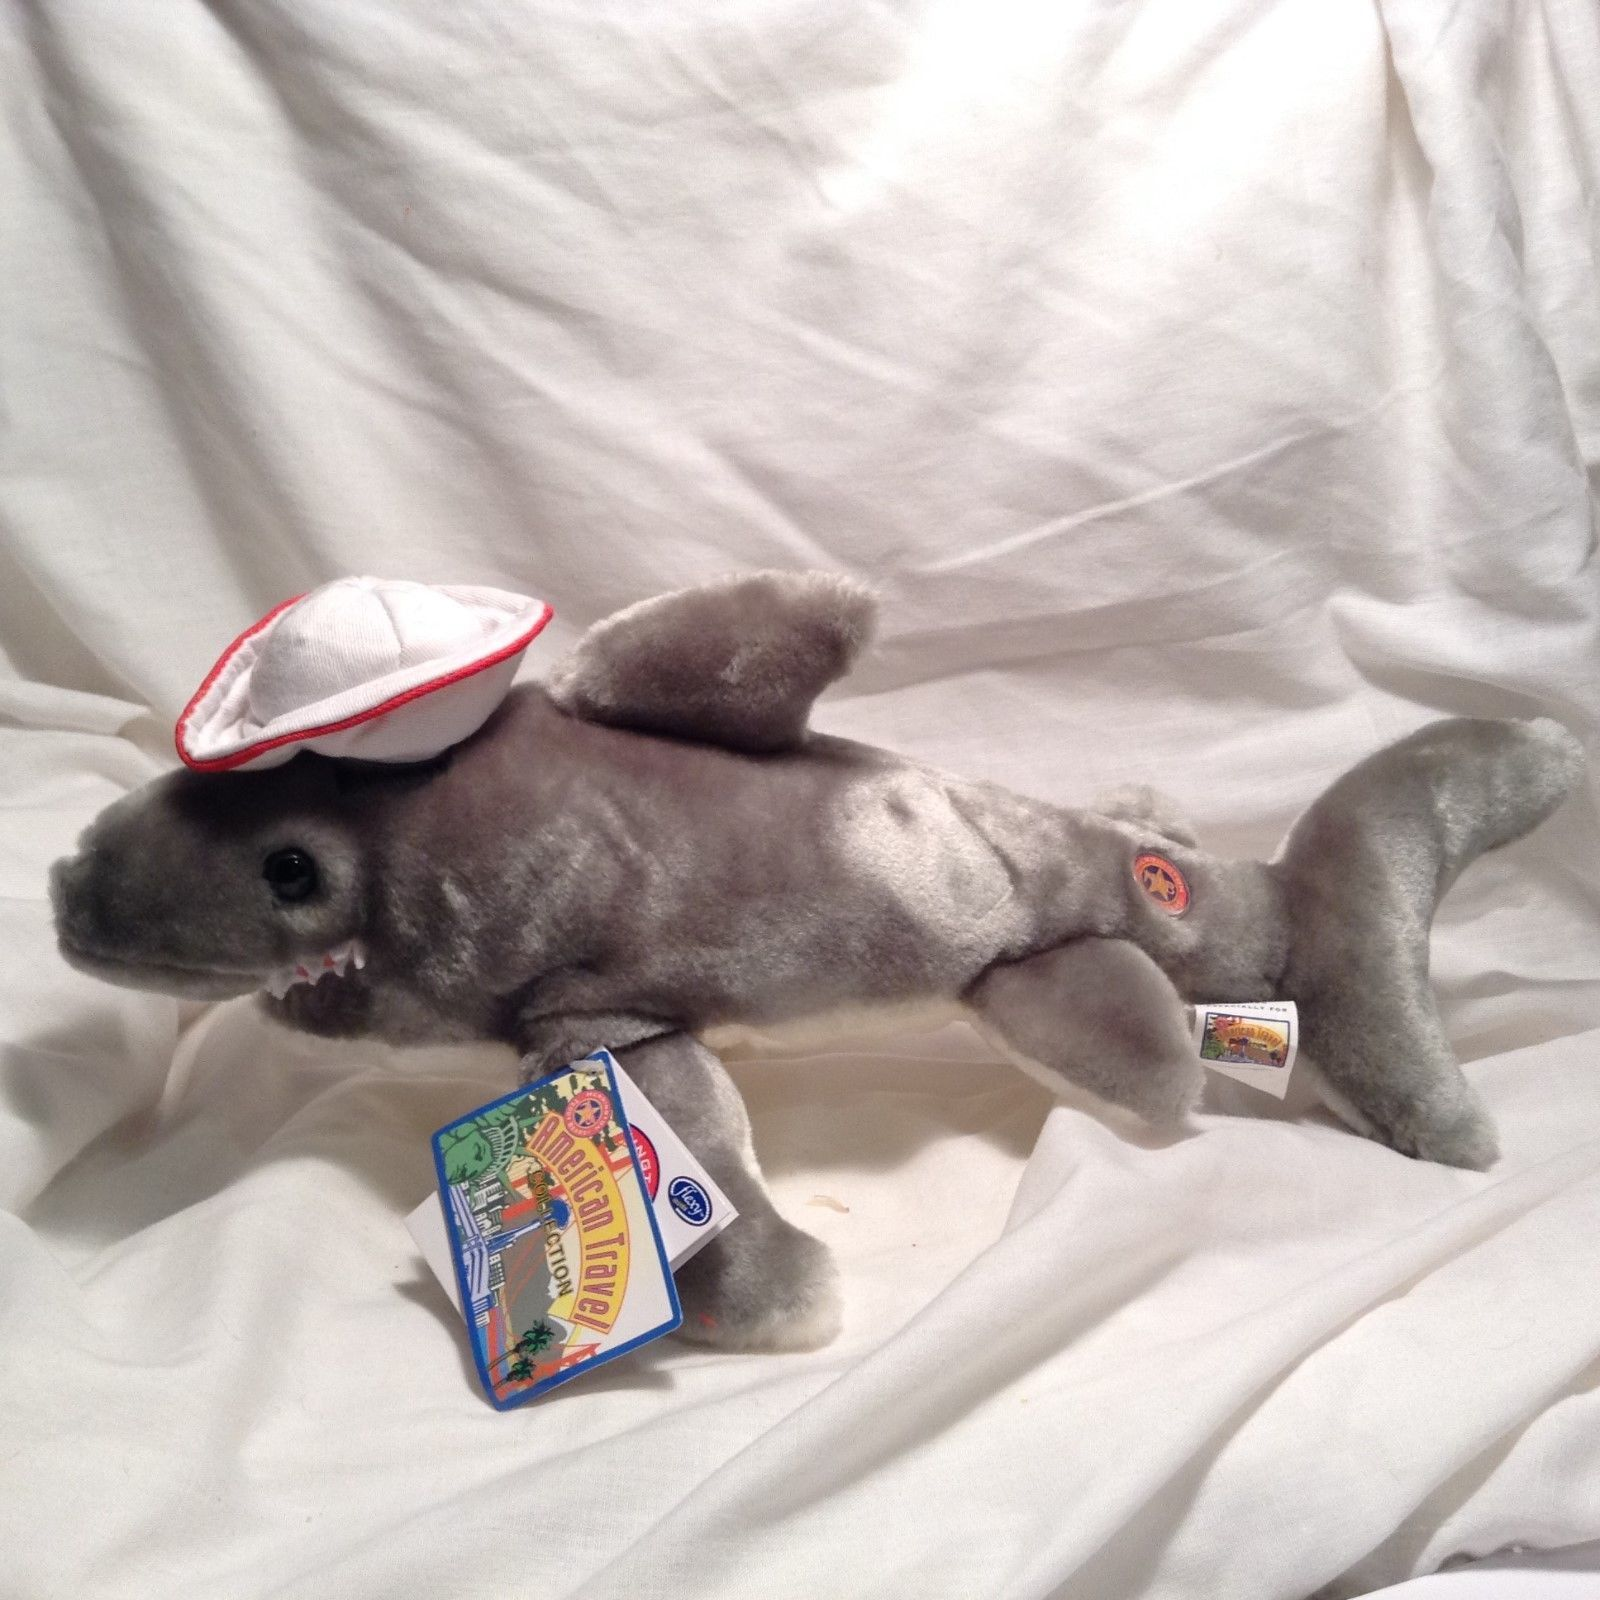 NEW Herrington 'Jaws the Shark' American Travel Collection Stuffed Animal